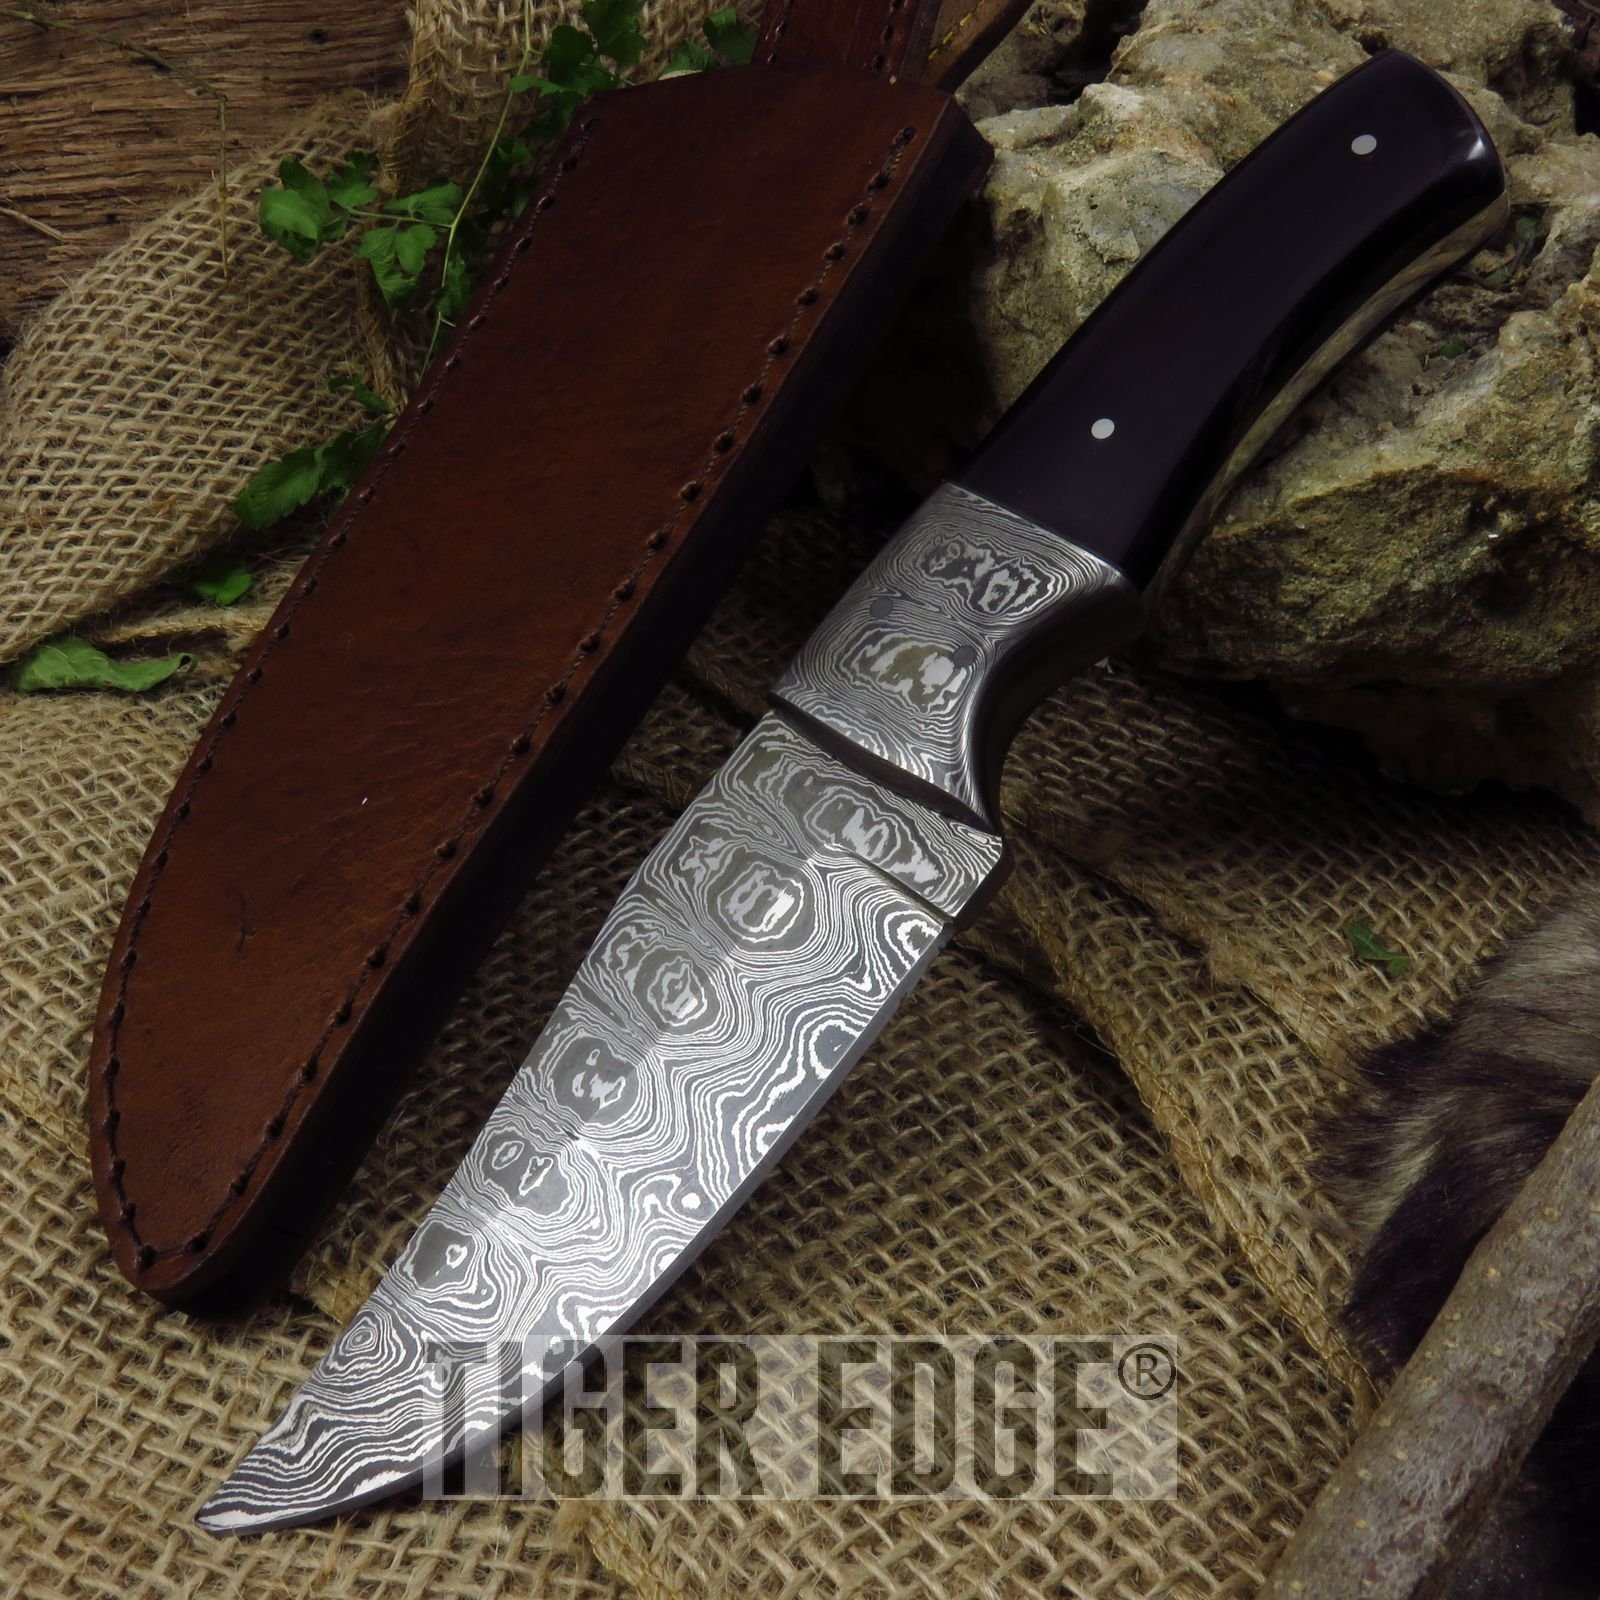 New 8. 5'' Damascus Steel, Buffalo Horn Handle, Full Tang Hunting Skinning ProTactical'US - Limited Edition - Elite Knife with Sharp Blade by New